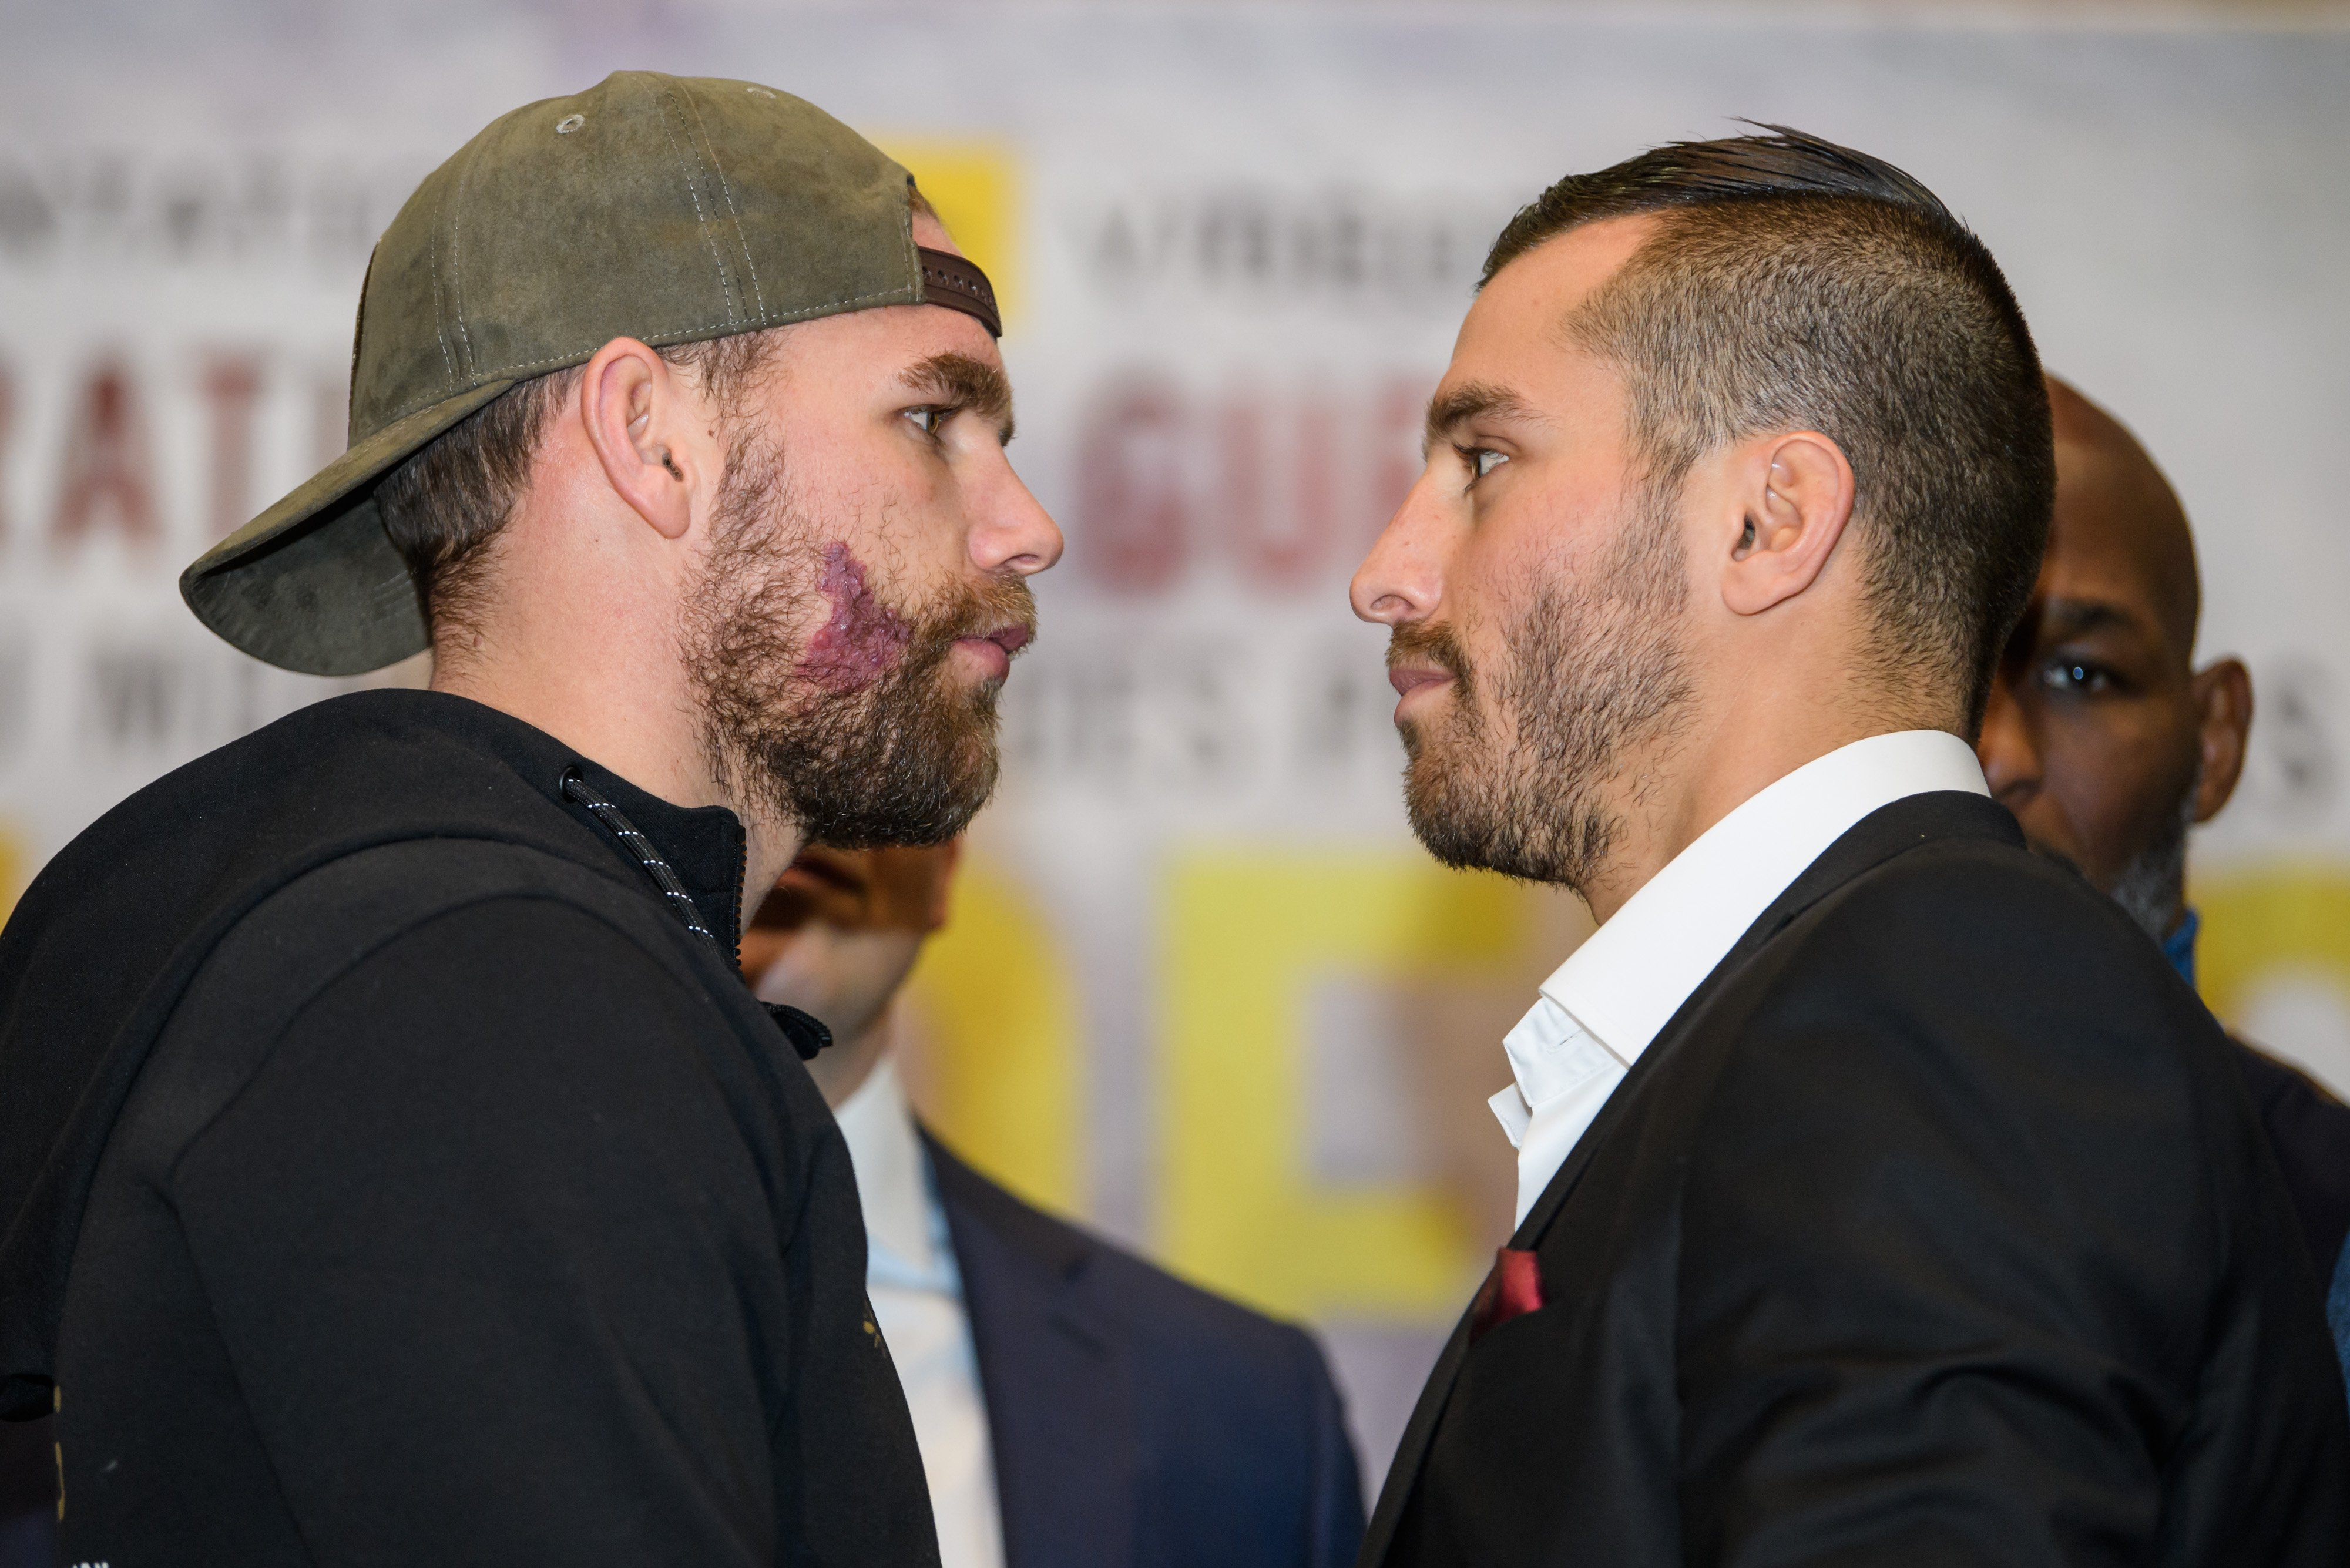 It nearly kicks off at Billy Joe Saunders' weigh-in after disgusting insult